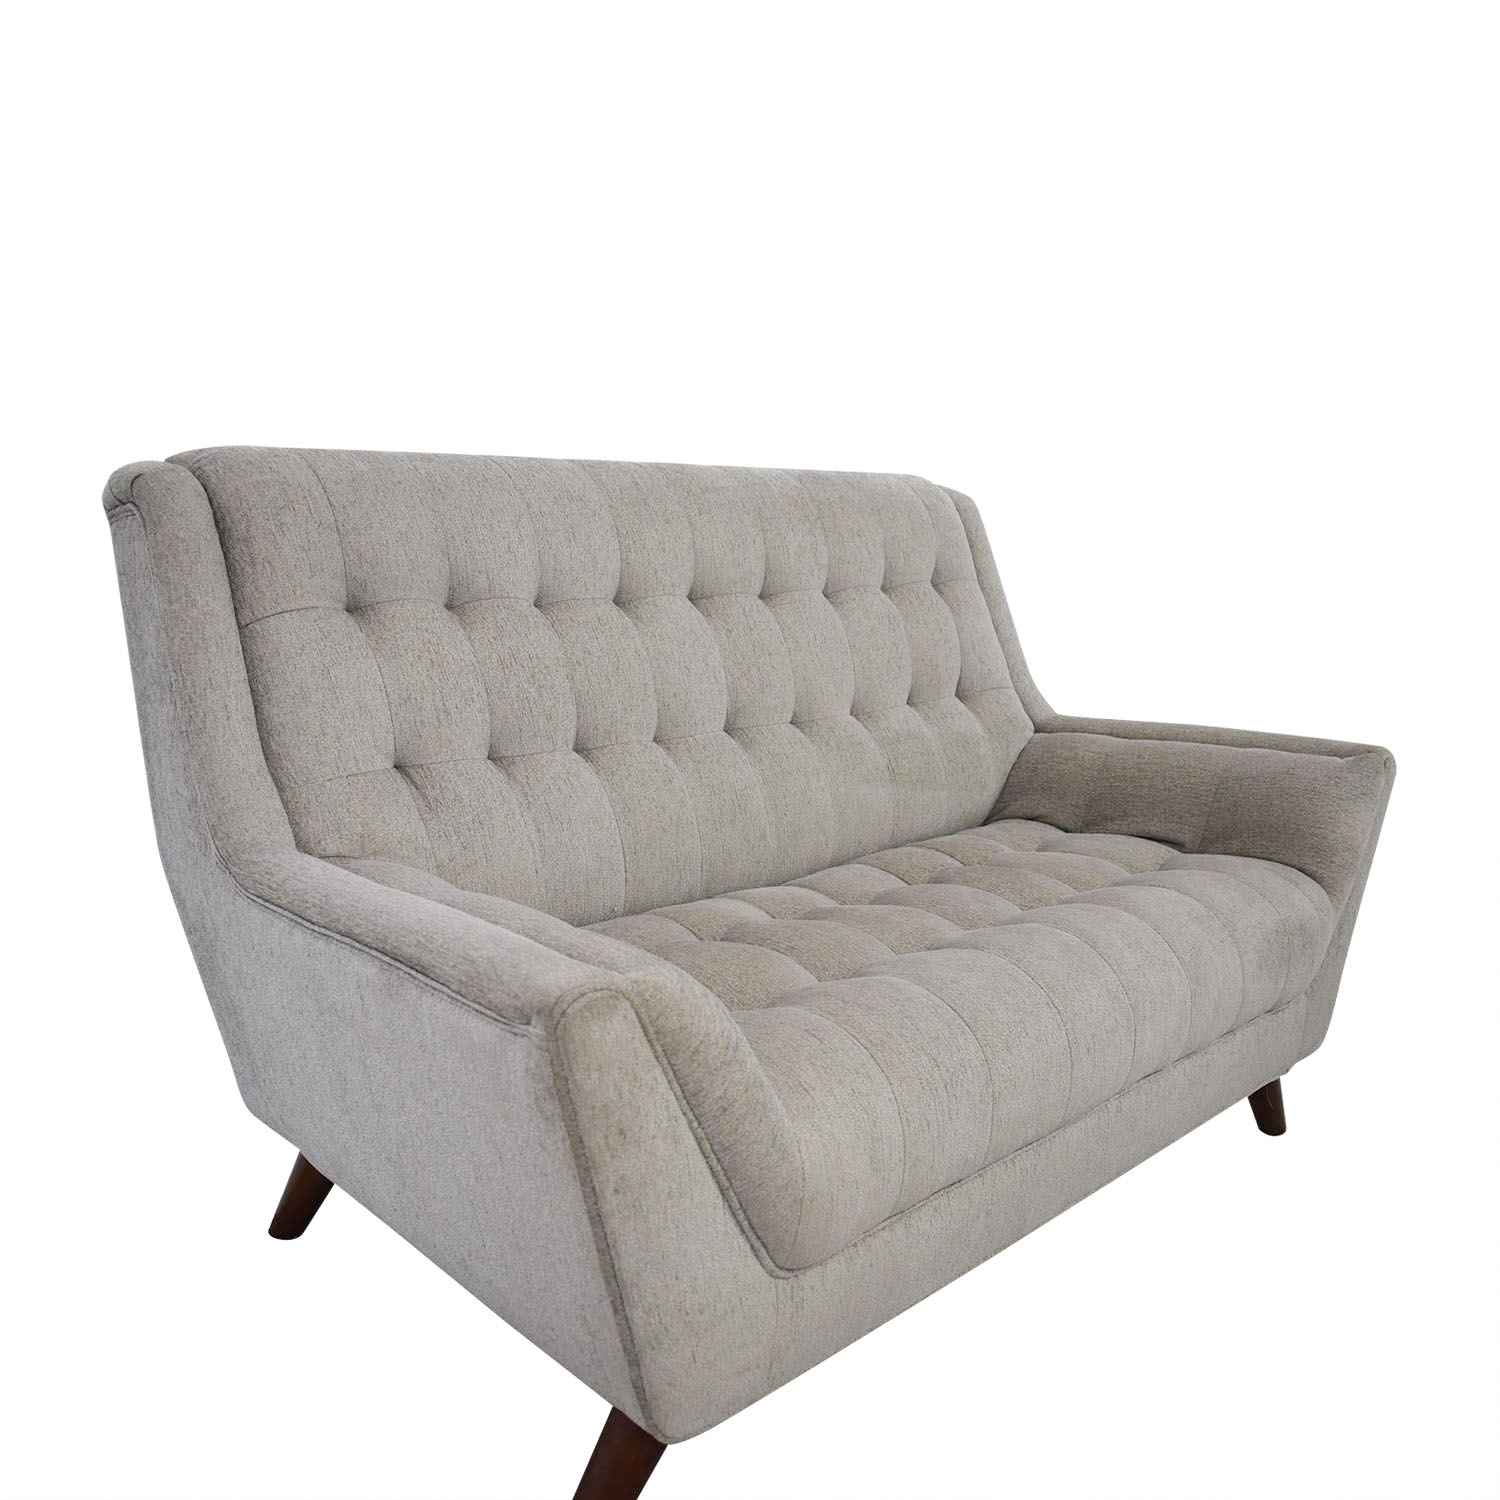 63 Off Wayfair Wayfair Tufted Loveseat Sofas